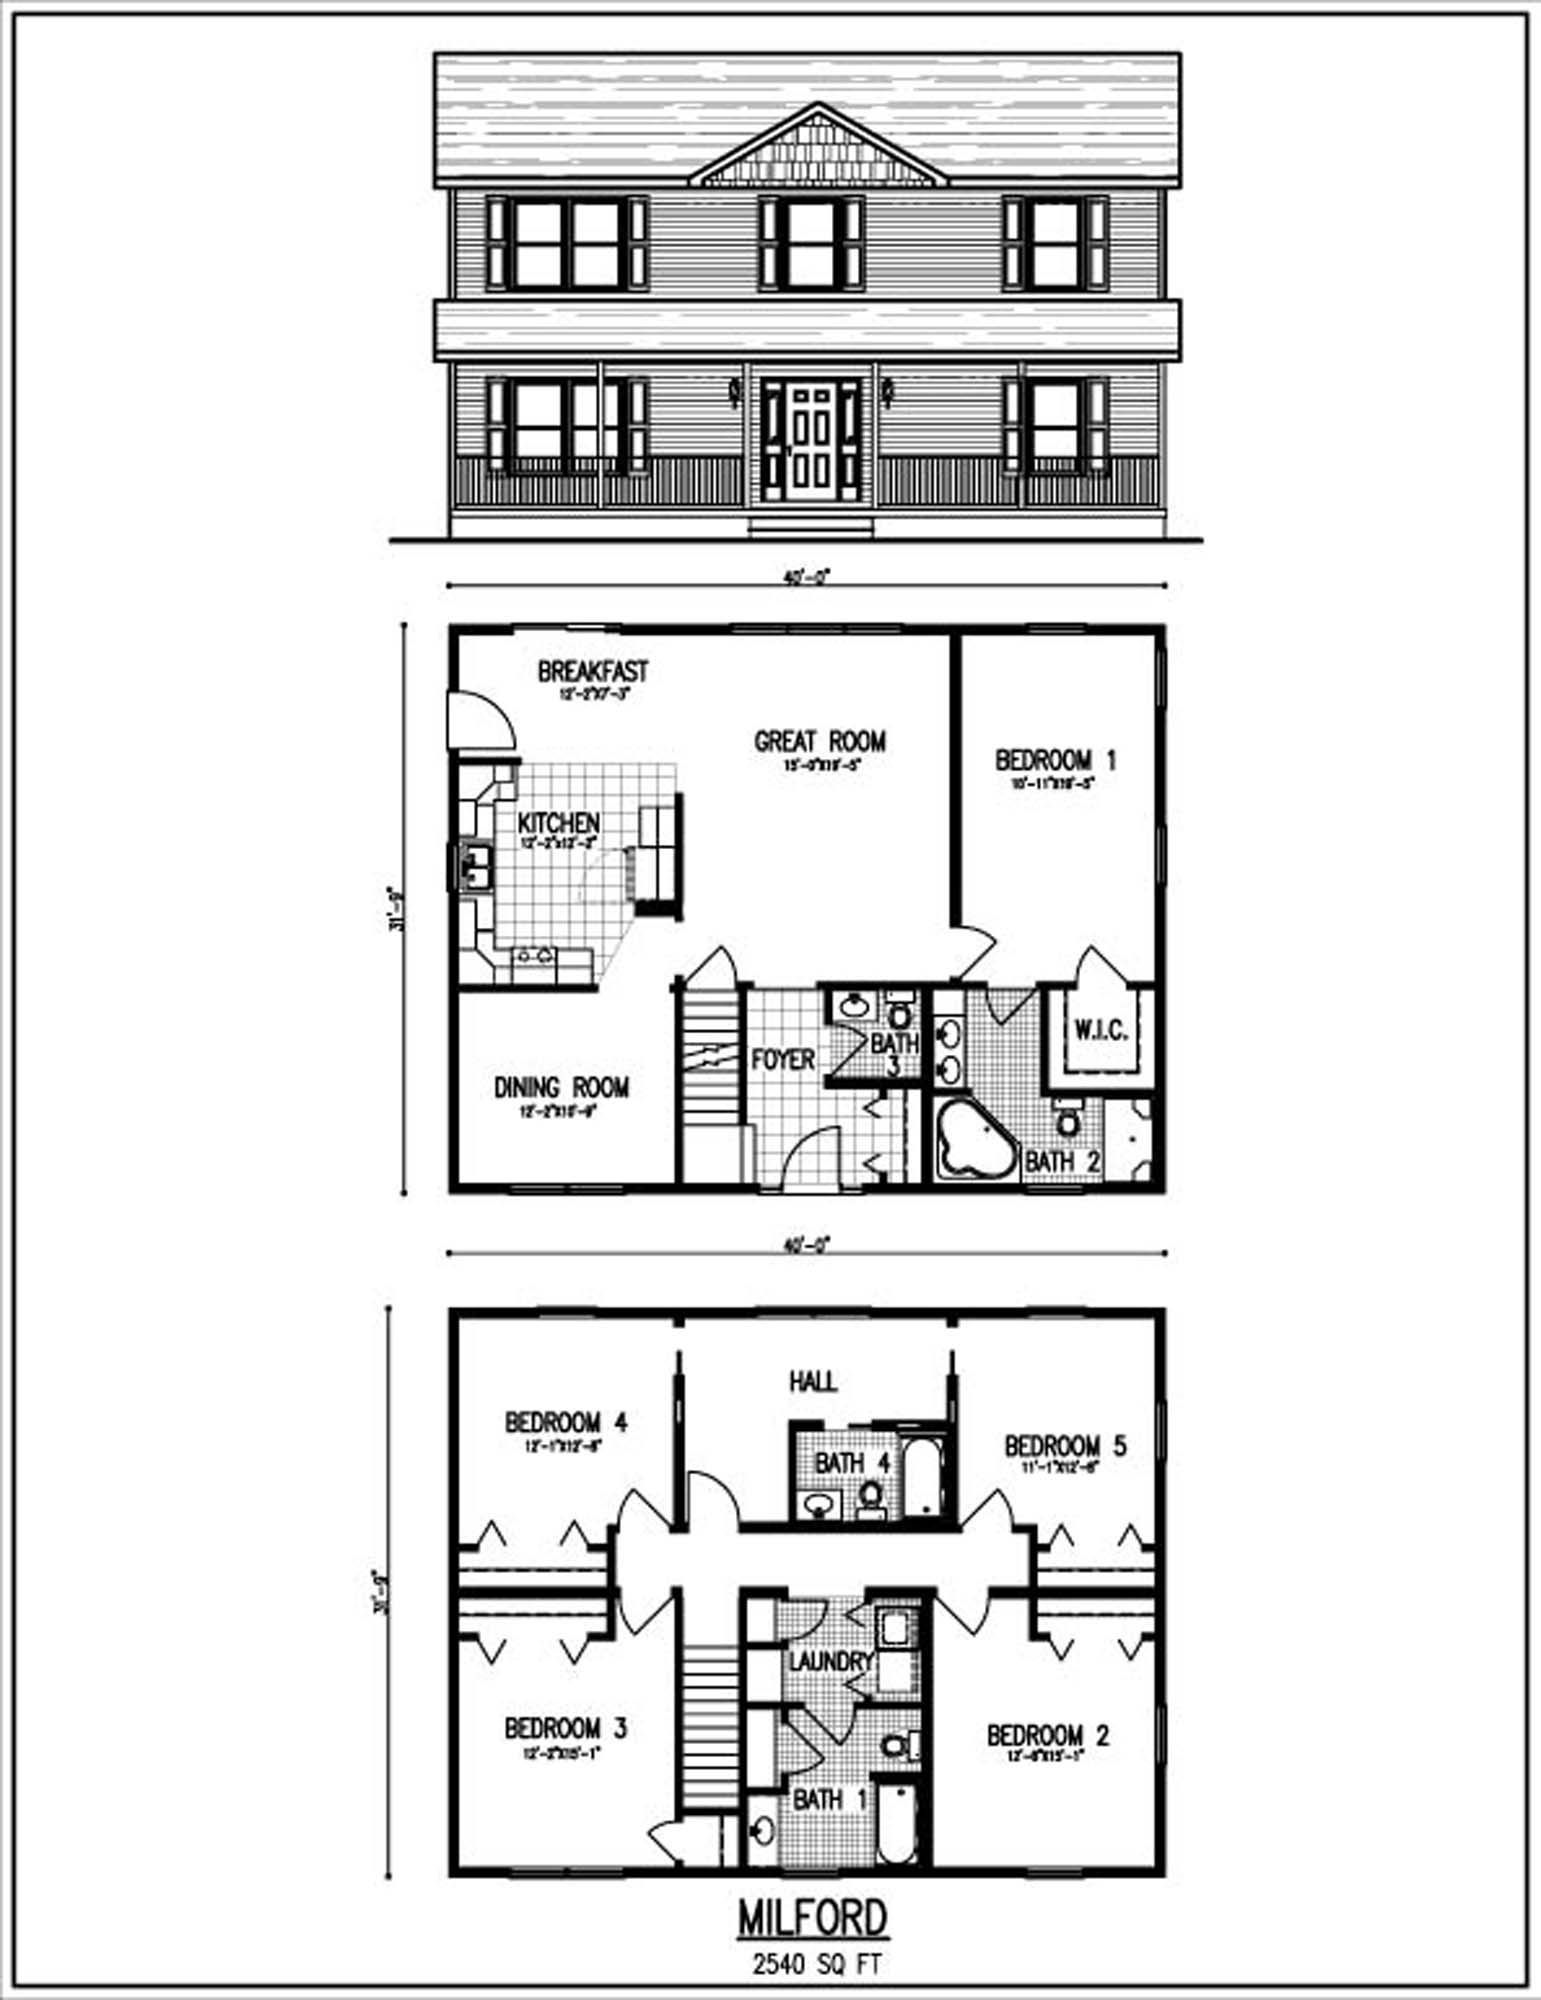 21 Unusual Barndominium Floor Plan 2 Story To Inspire House Layout Plans Two Story House Plans 30x40 House Plans